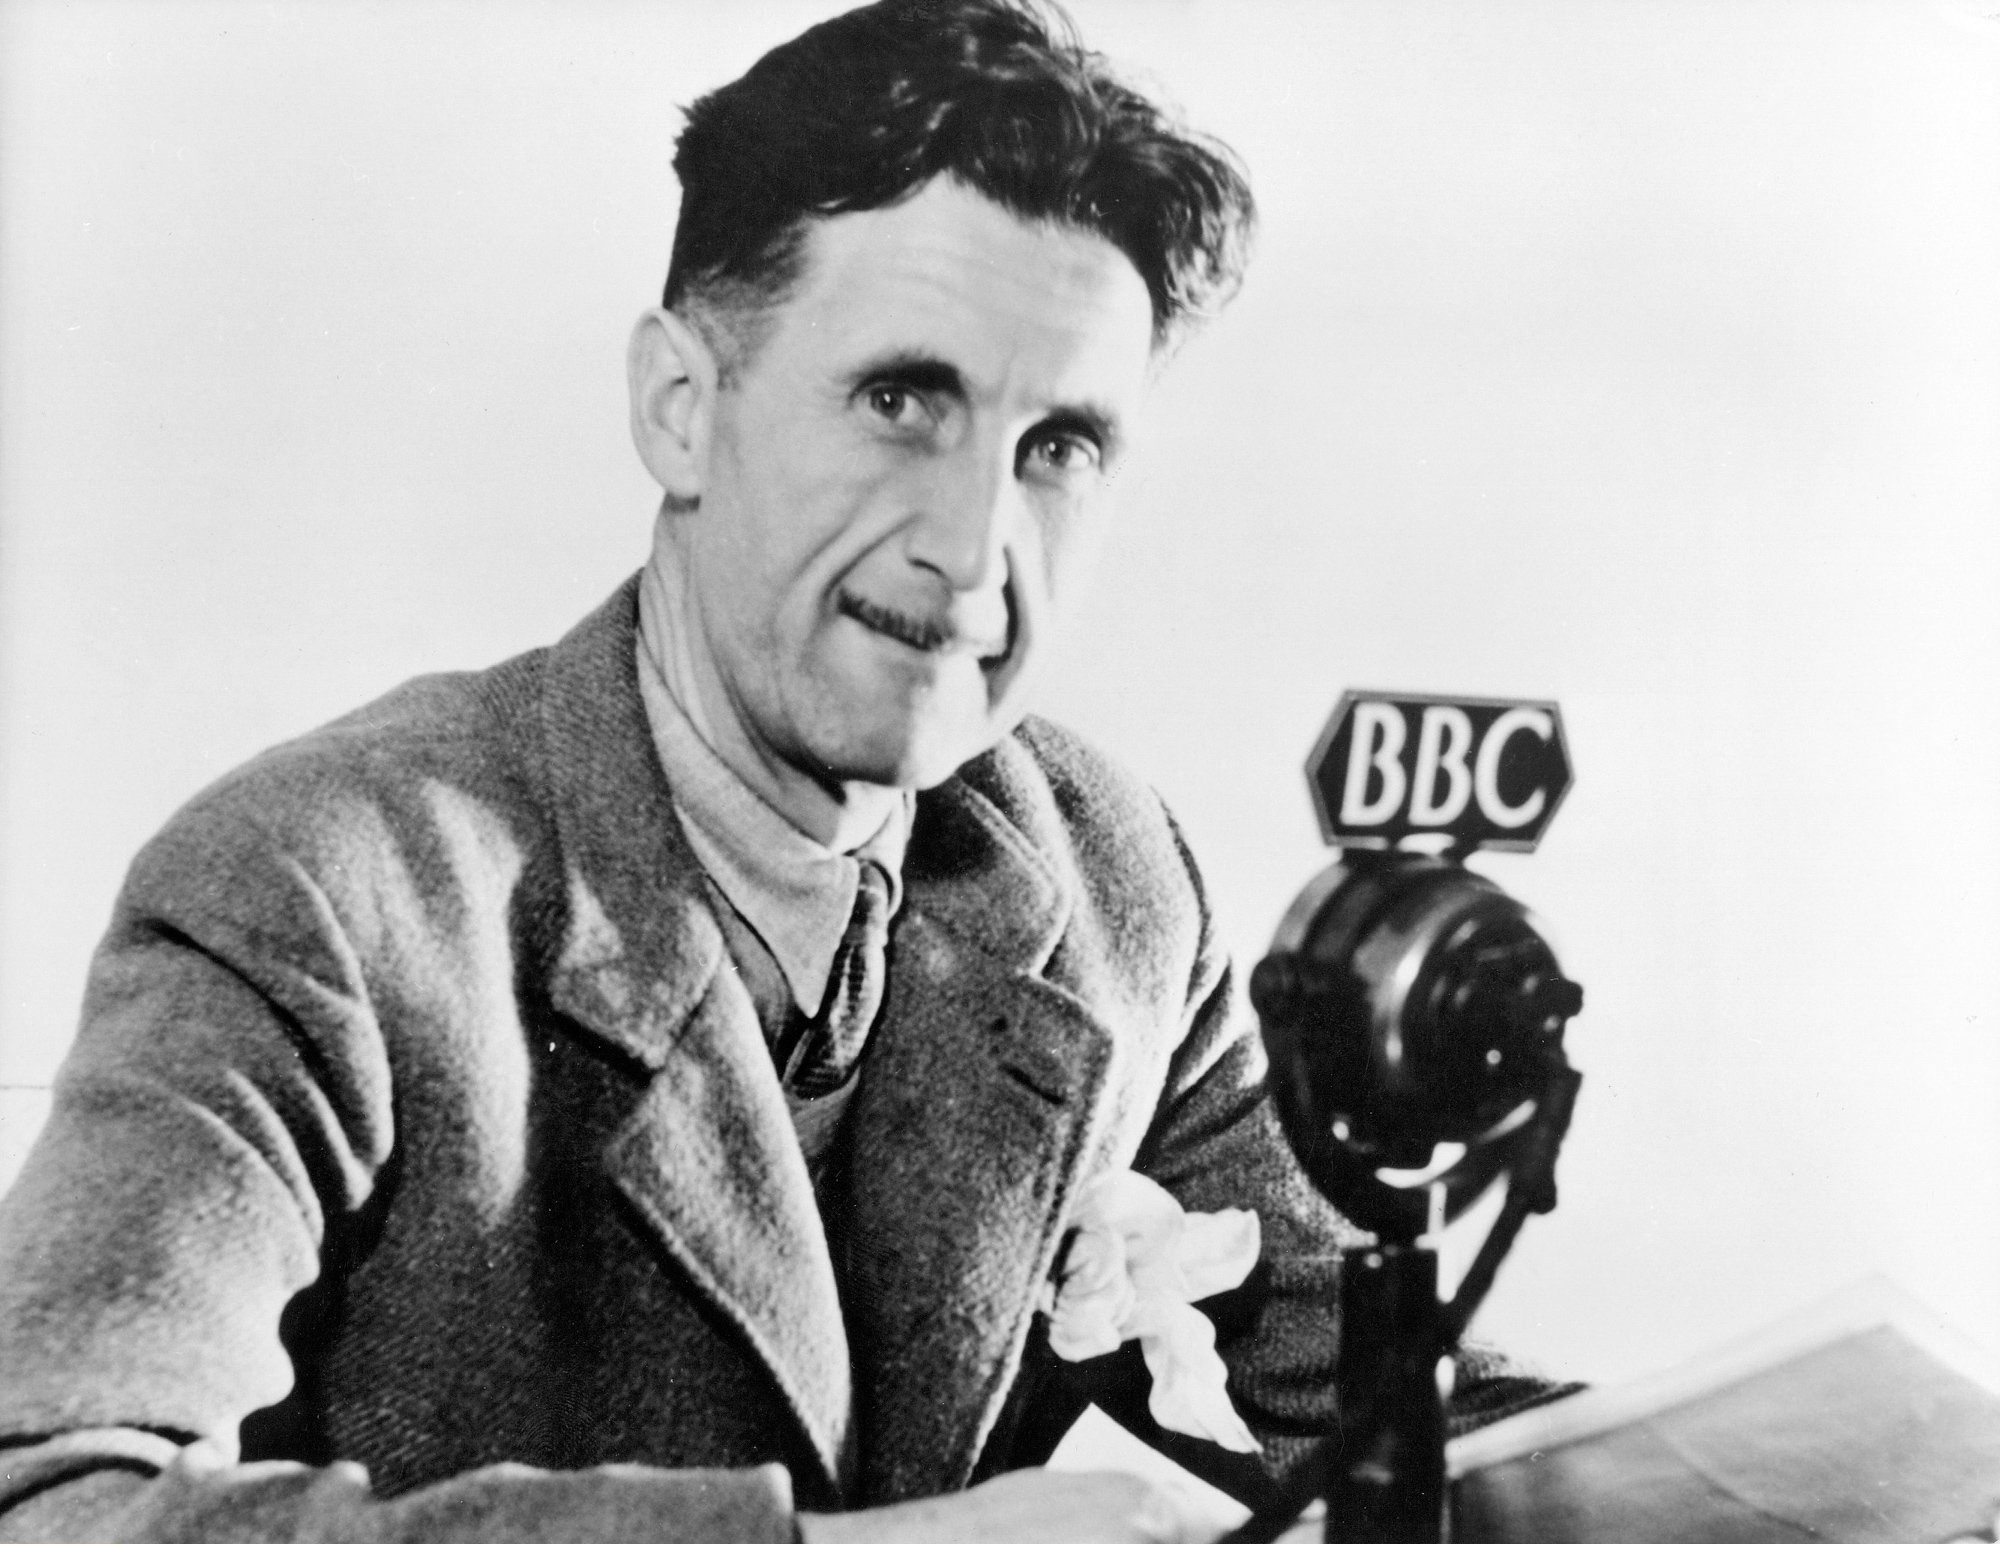 george orwell people page2 33 Celebrities You Didn't Know Used To Be Teachers